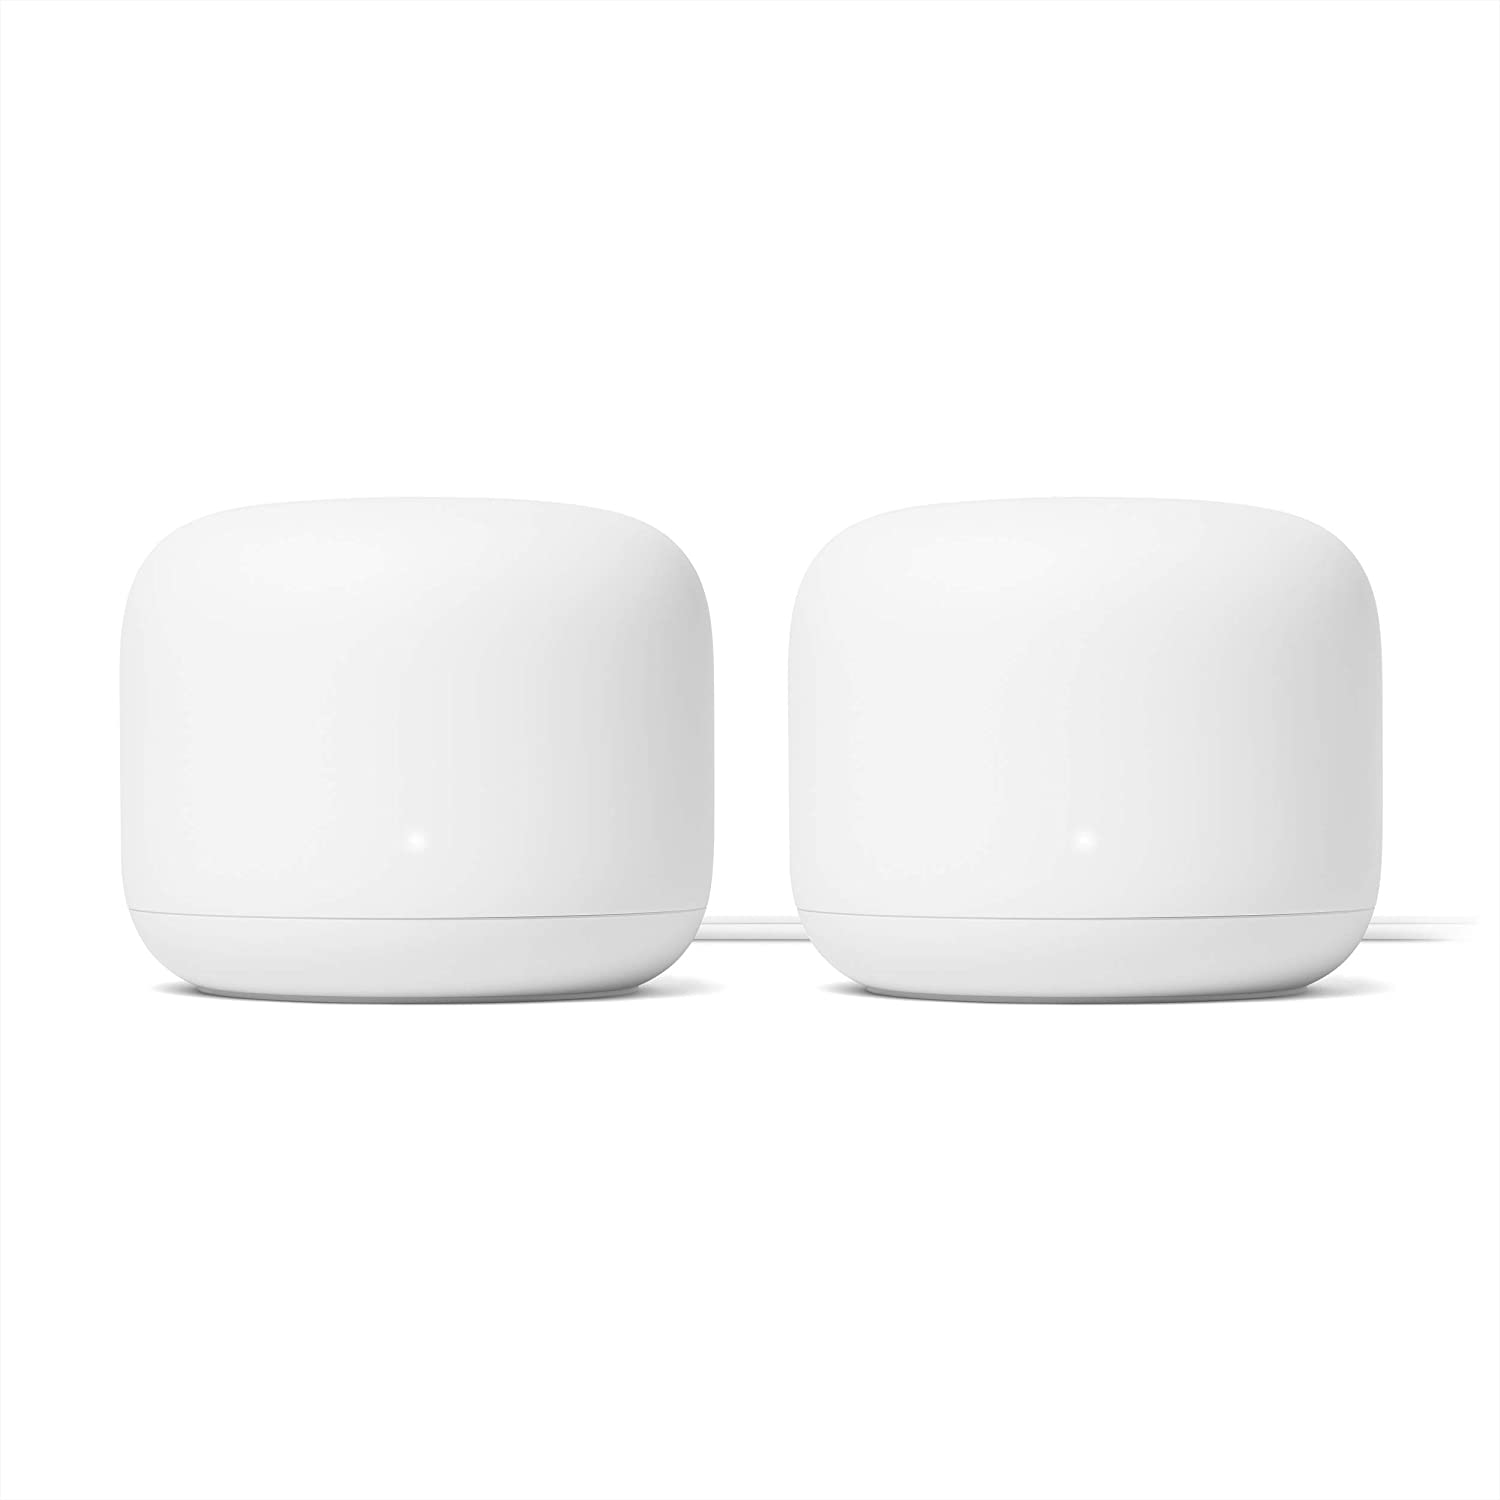 google nest mesh wifi router system for google fiber techswifty